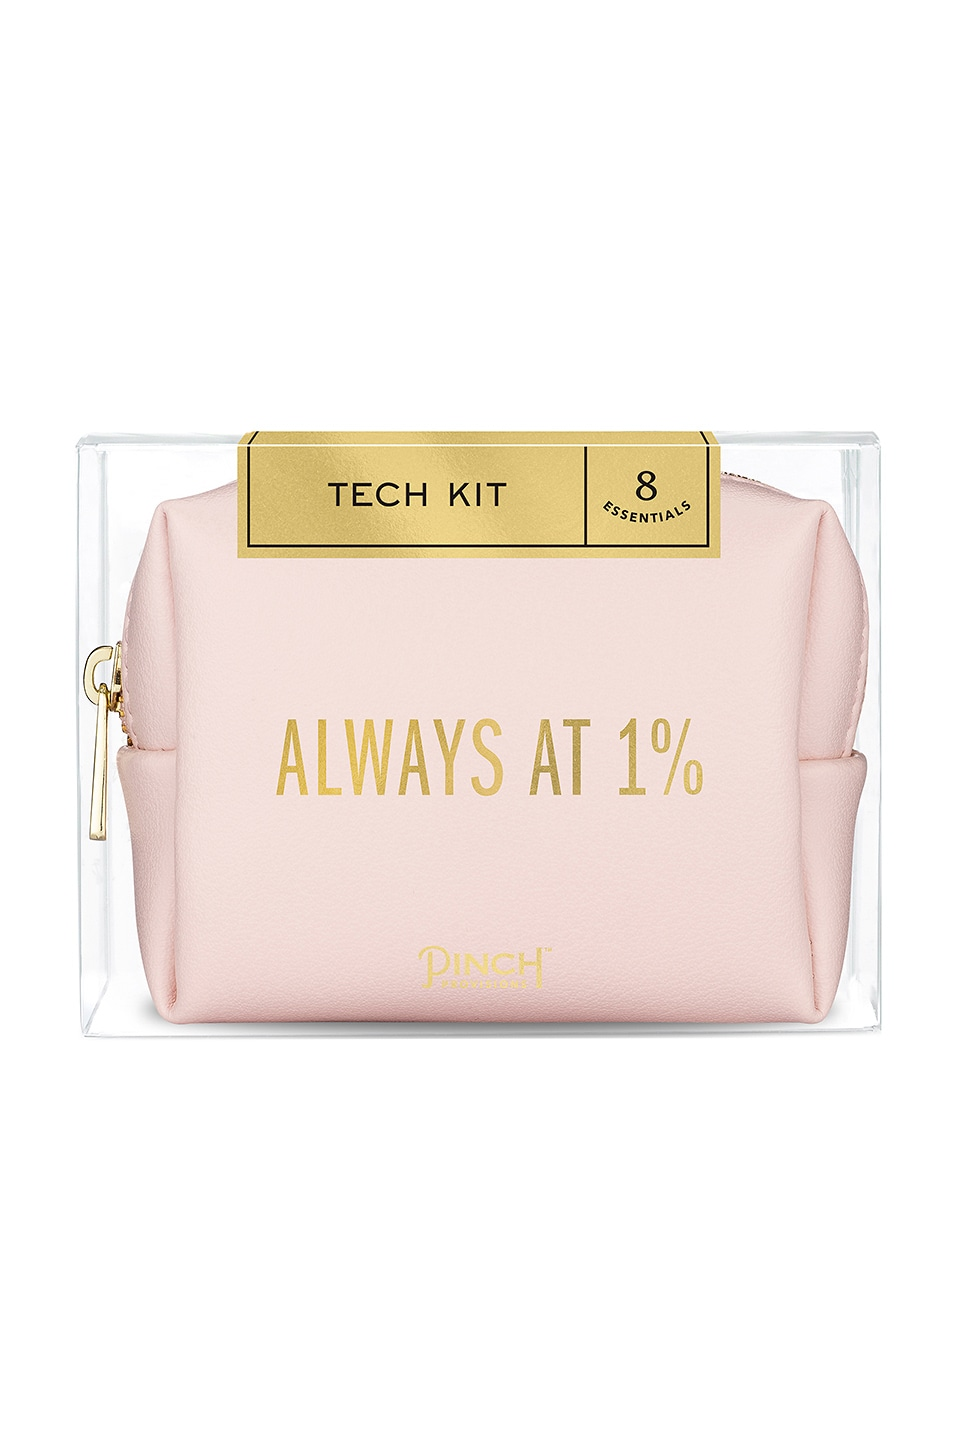 Pinch Provisions Always at 1% Tech Kit in Blush